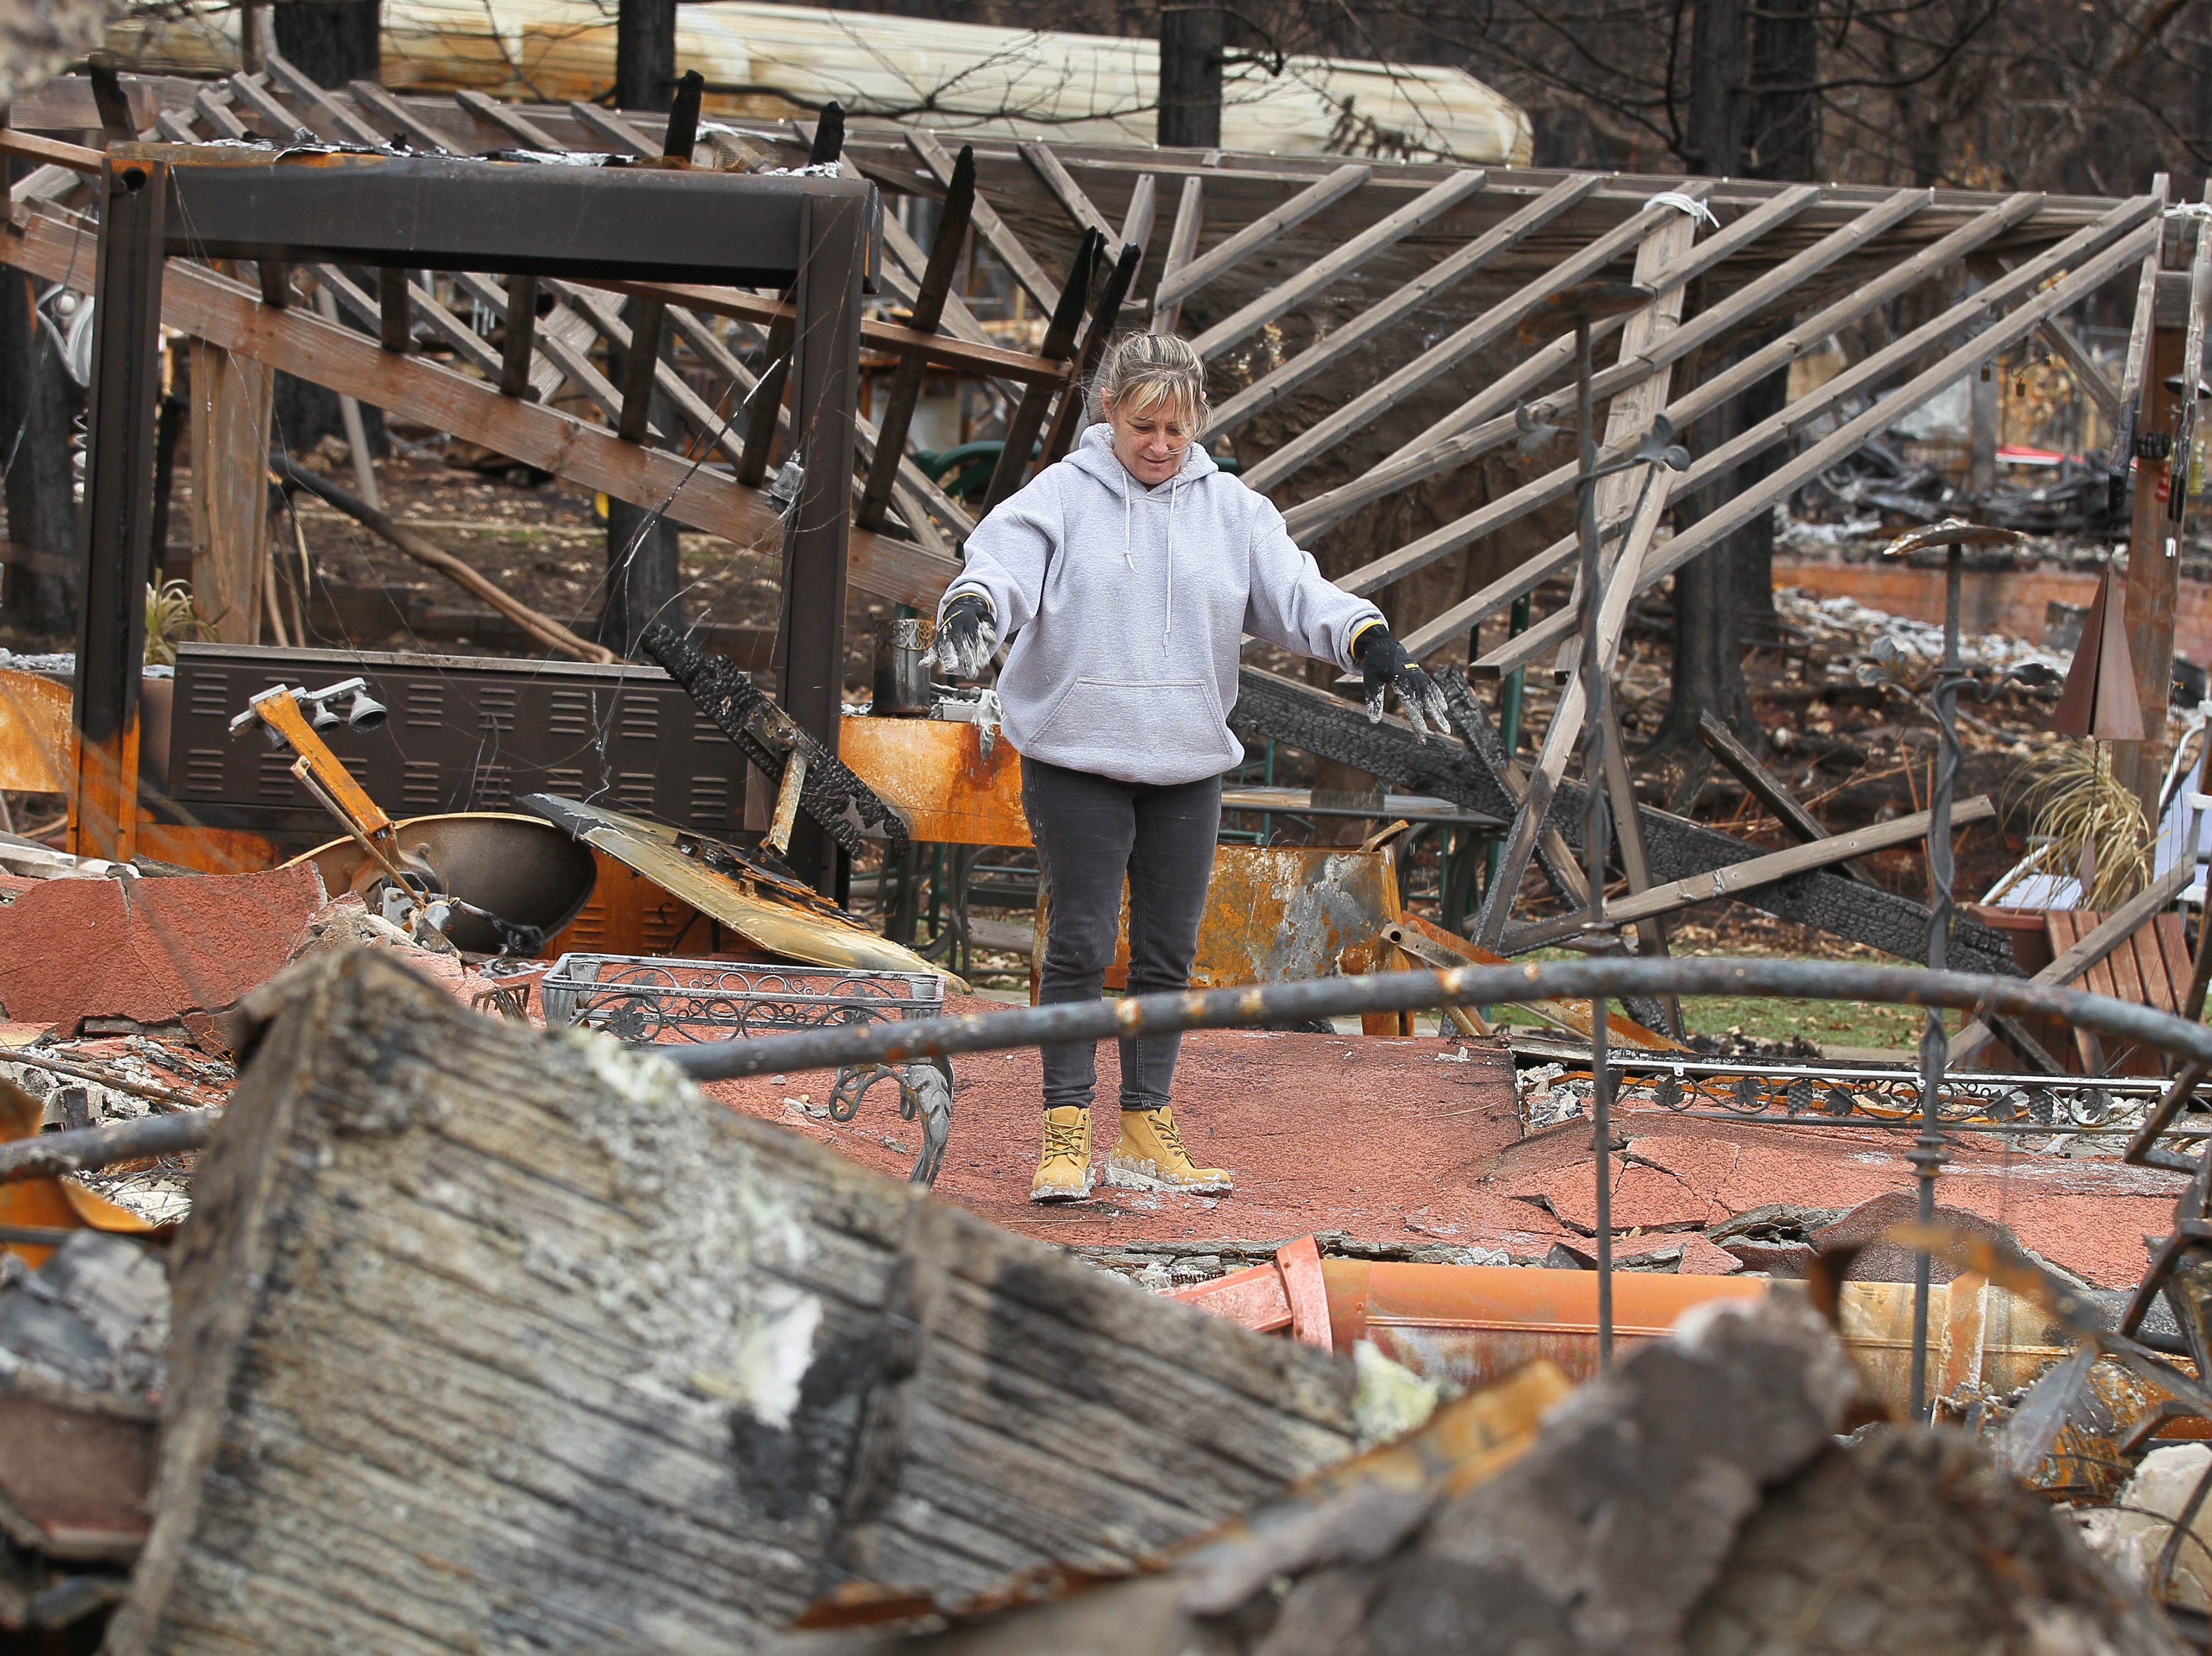 Tina Torres stands in the middle of her burned house, looking for items she can salvage. It's the first day she and other residents were allowed to return to their home sites since they were evacuated during the Camp Fire on Nov. 8, 2018.